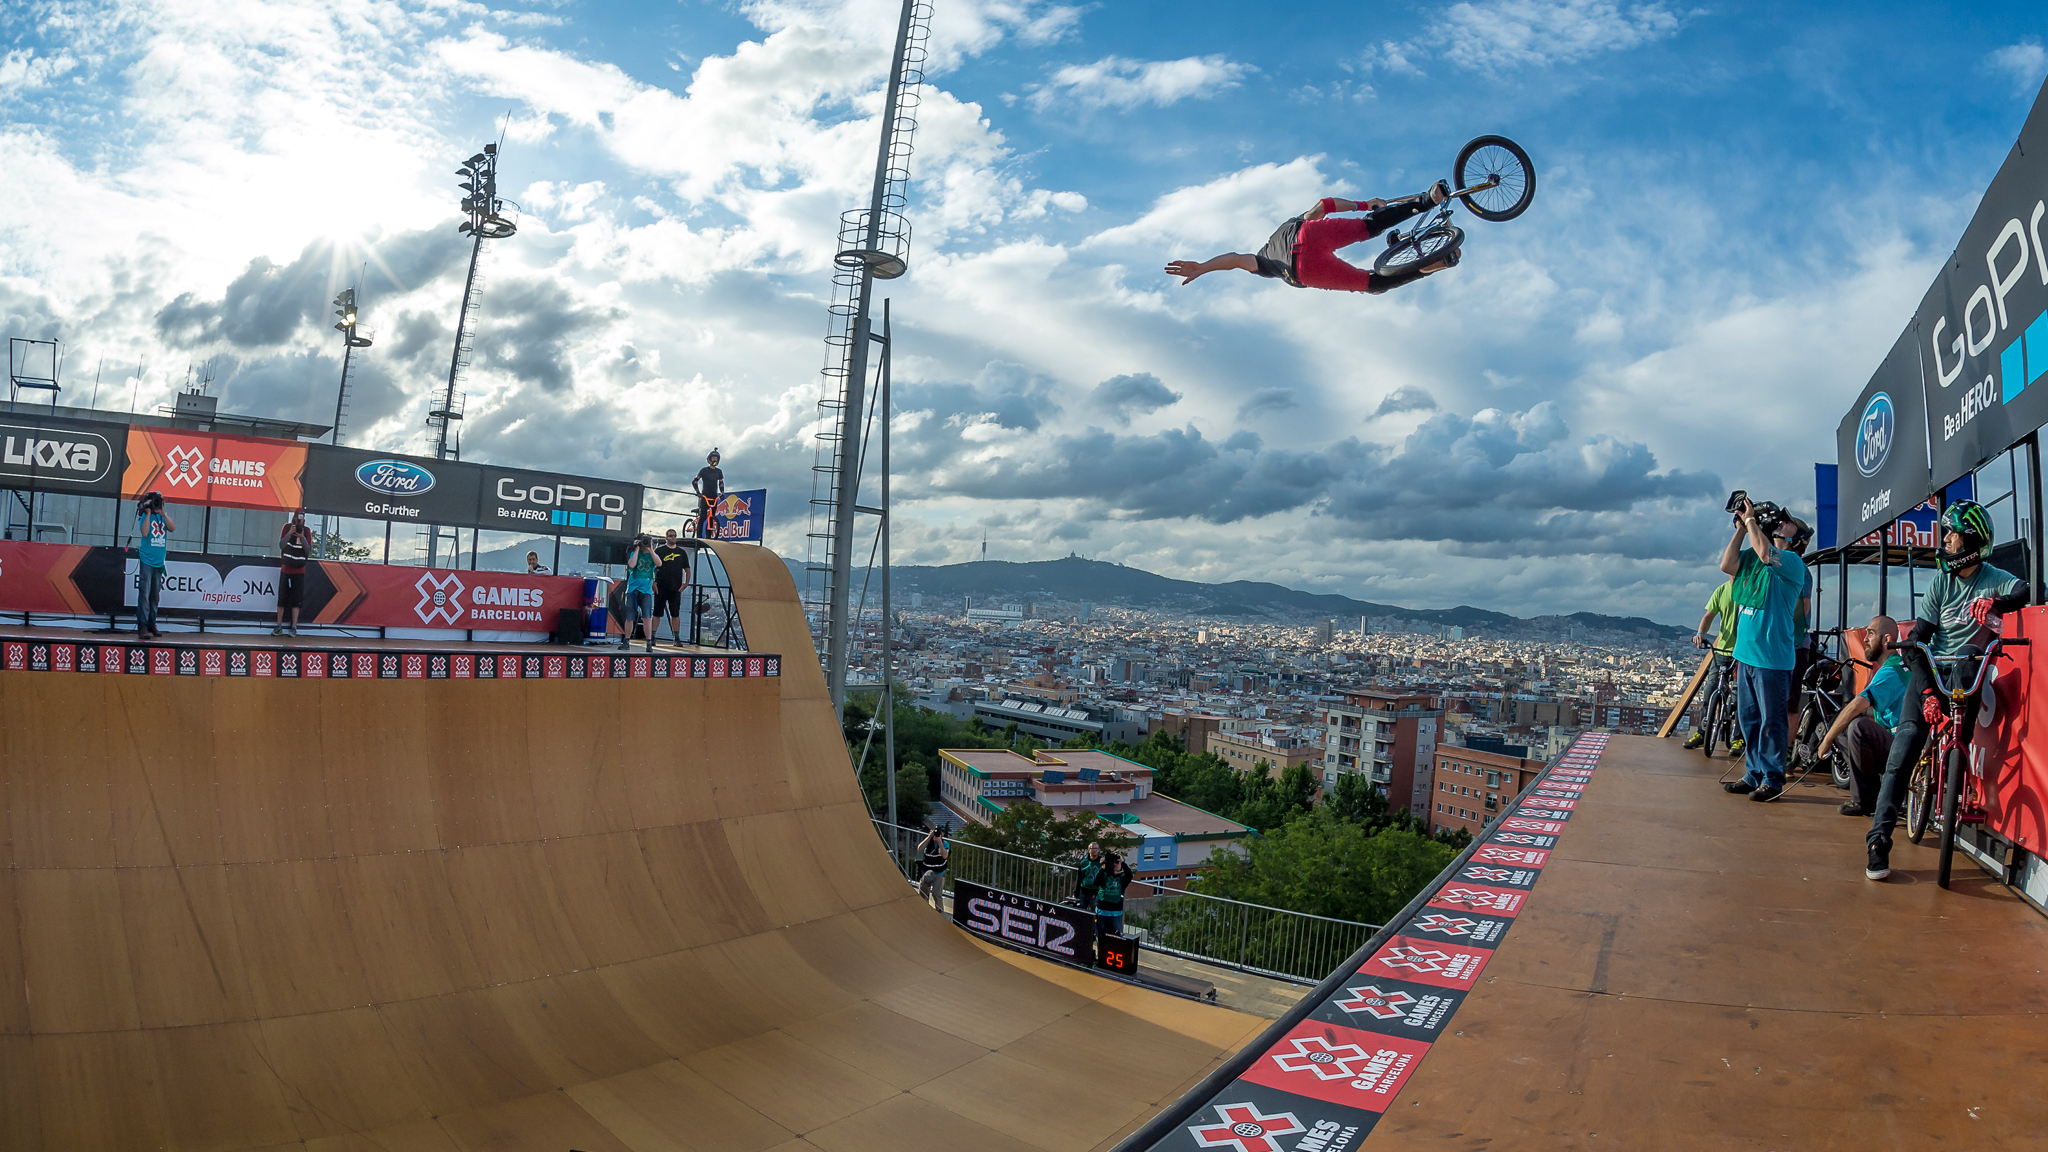 BMX firsts at X Games Barcelona-BMX firsts in Barcelona